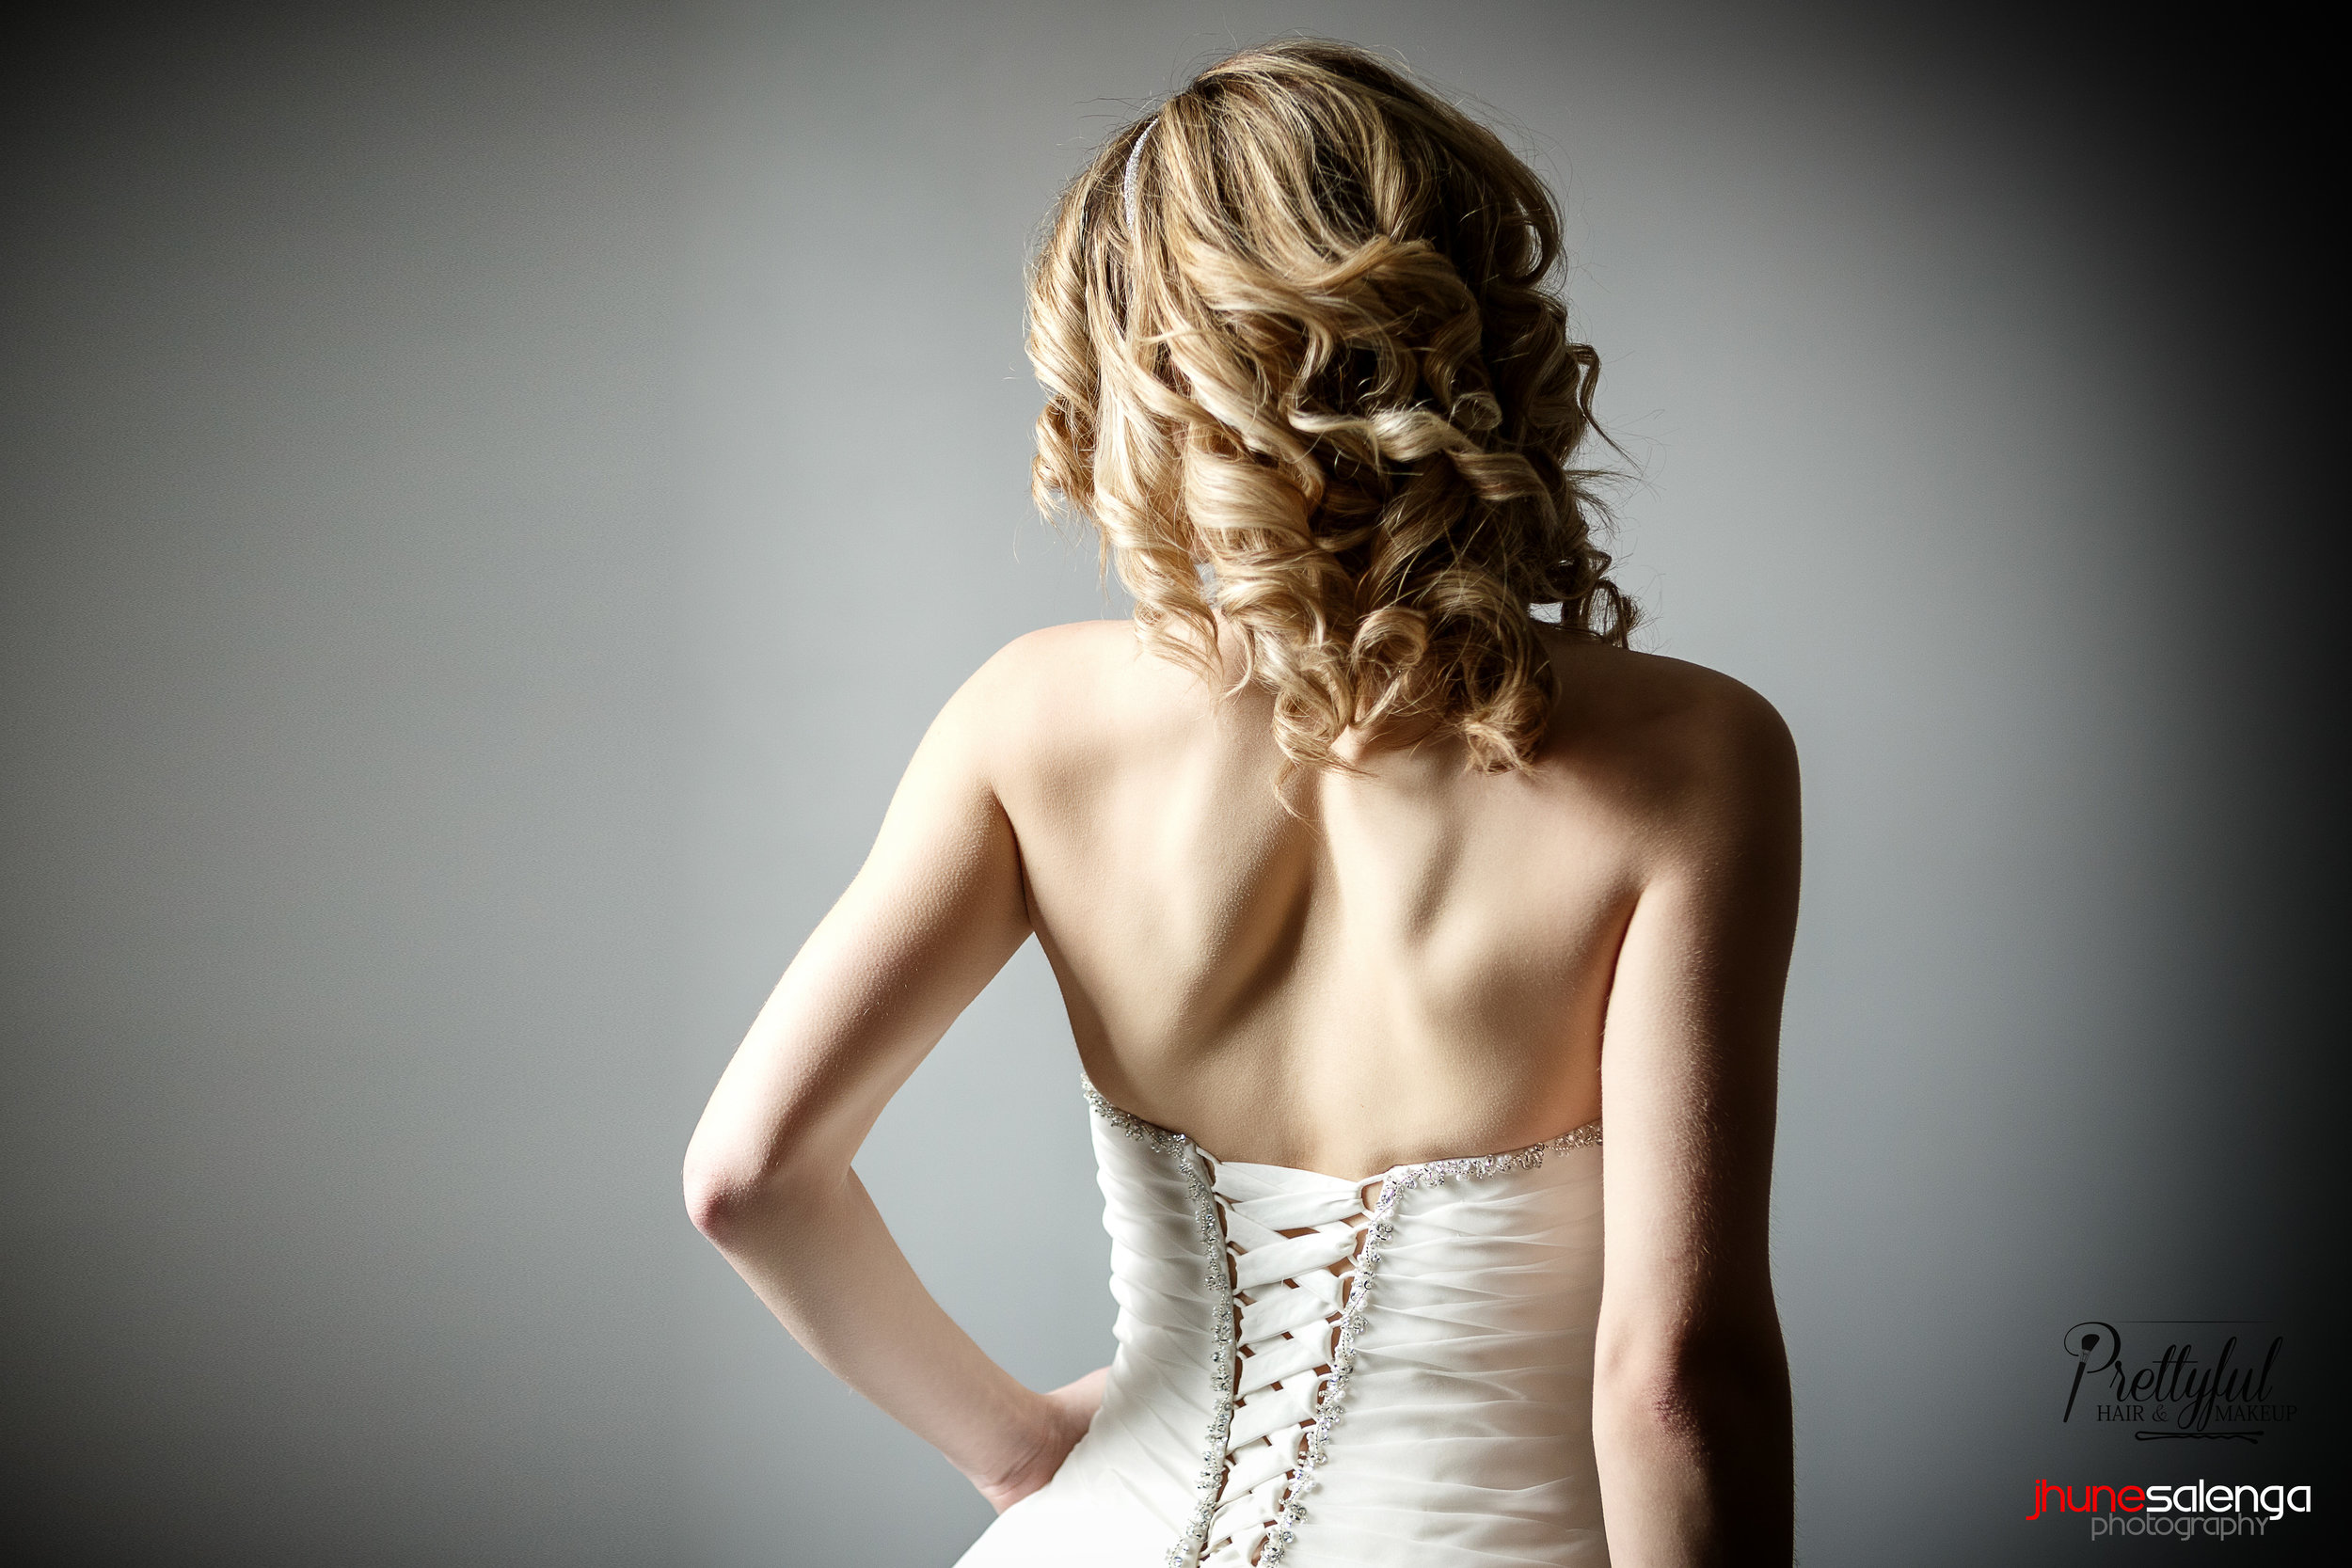 Bridal Hair Styling - Bridal Hair and Makeup Trials $200Wedding Packages starting at $750